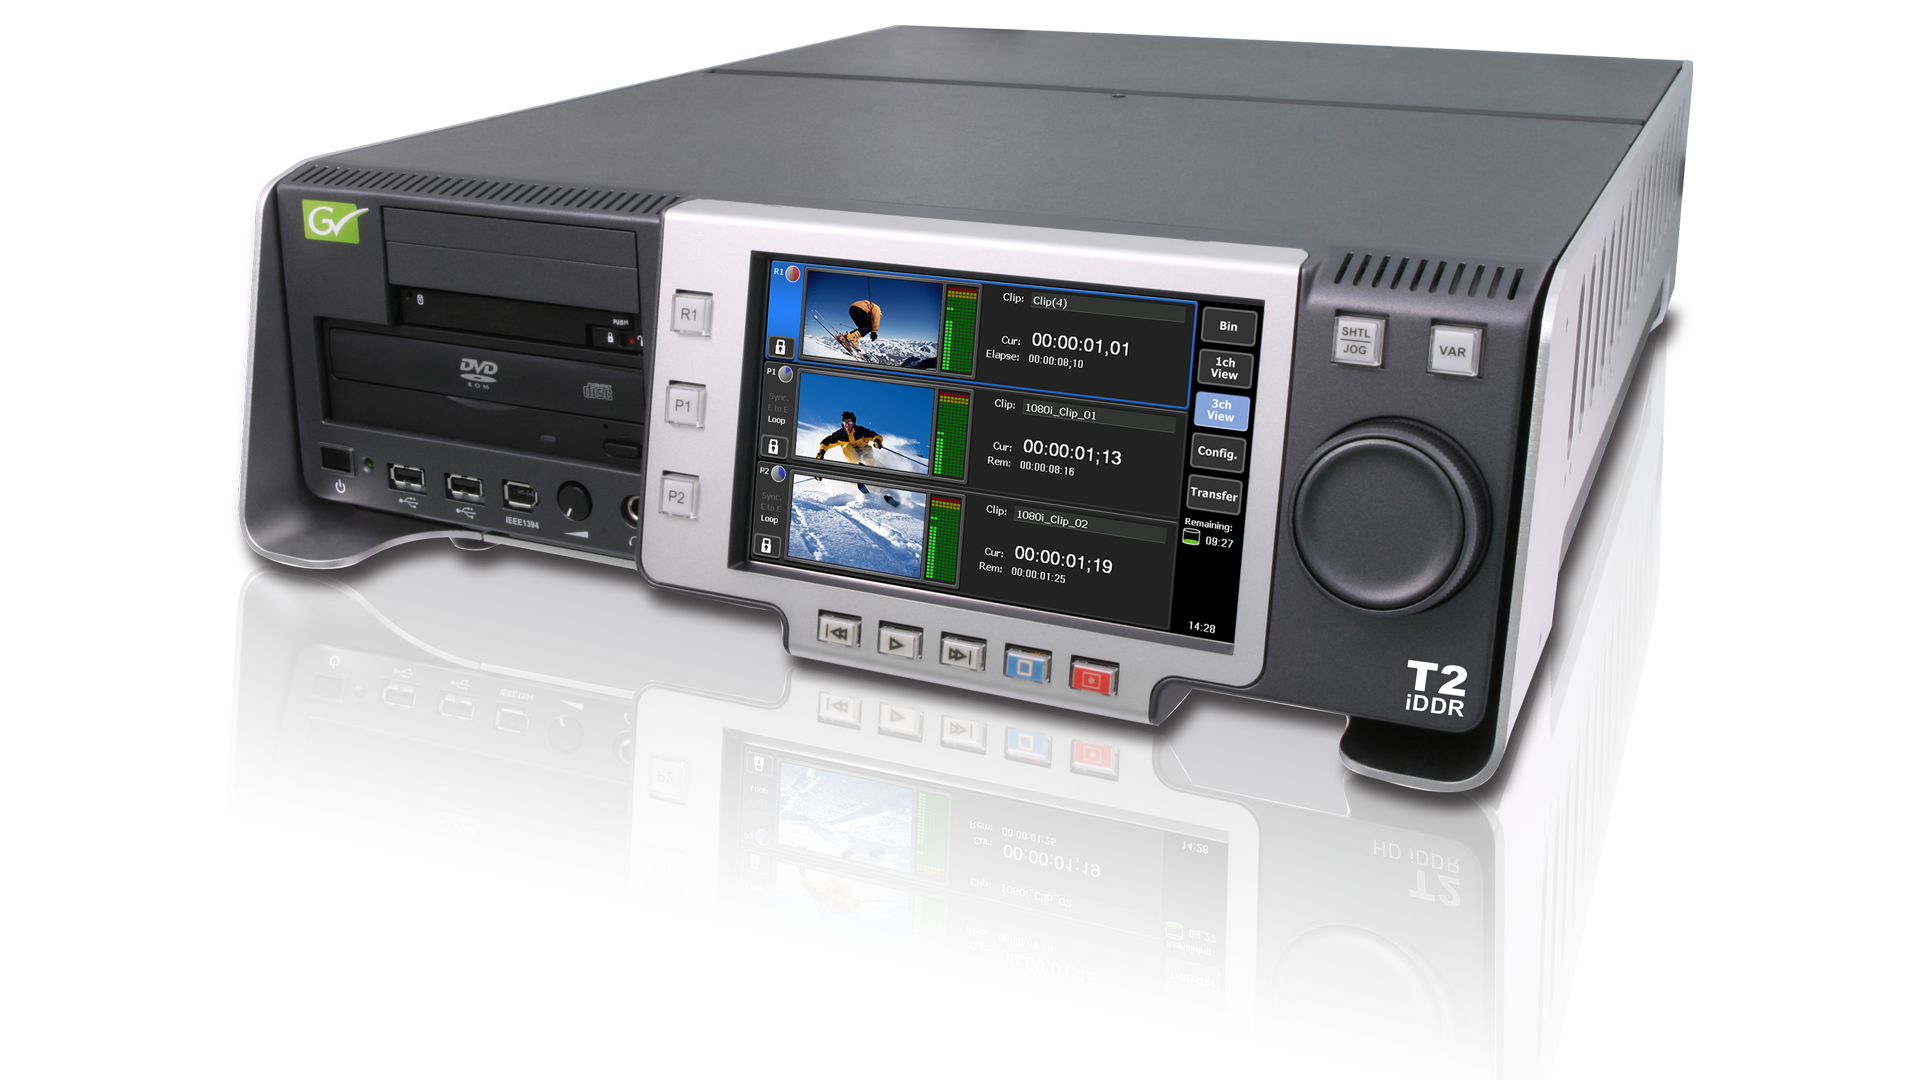 GRASS VALLEY T2 iDDR DISC RECORDER